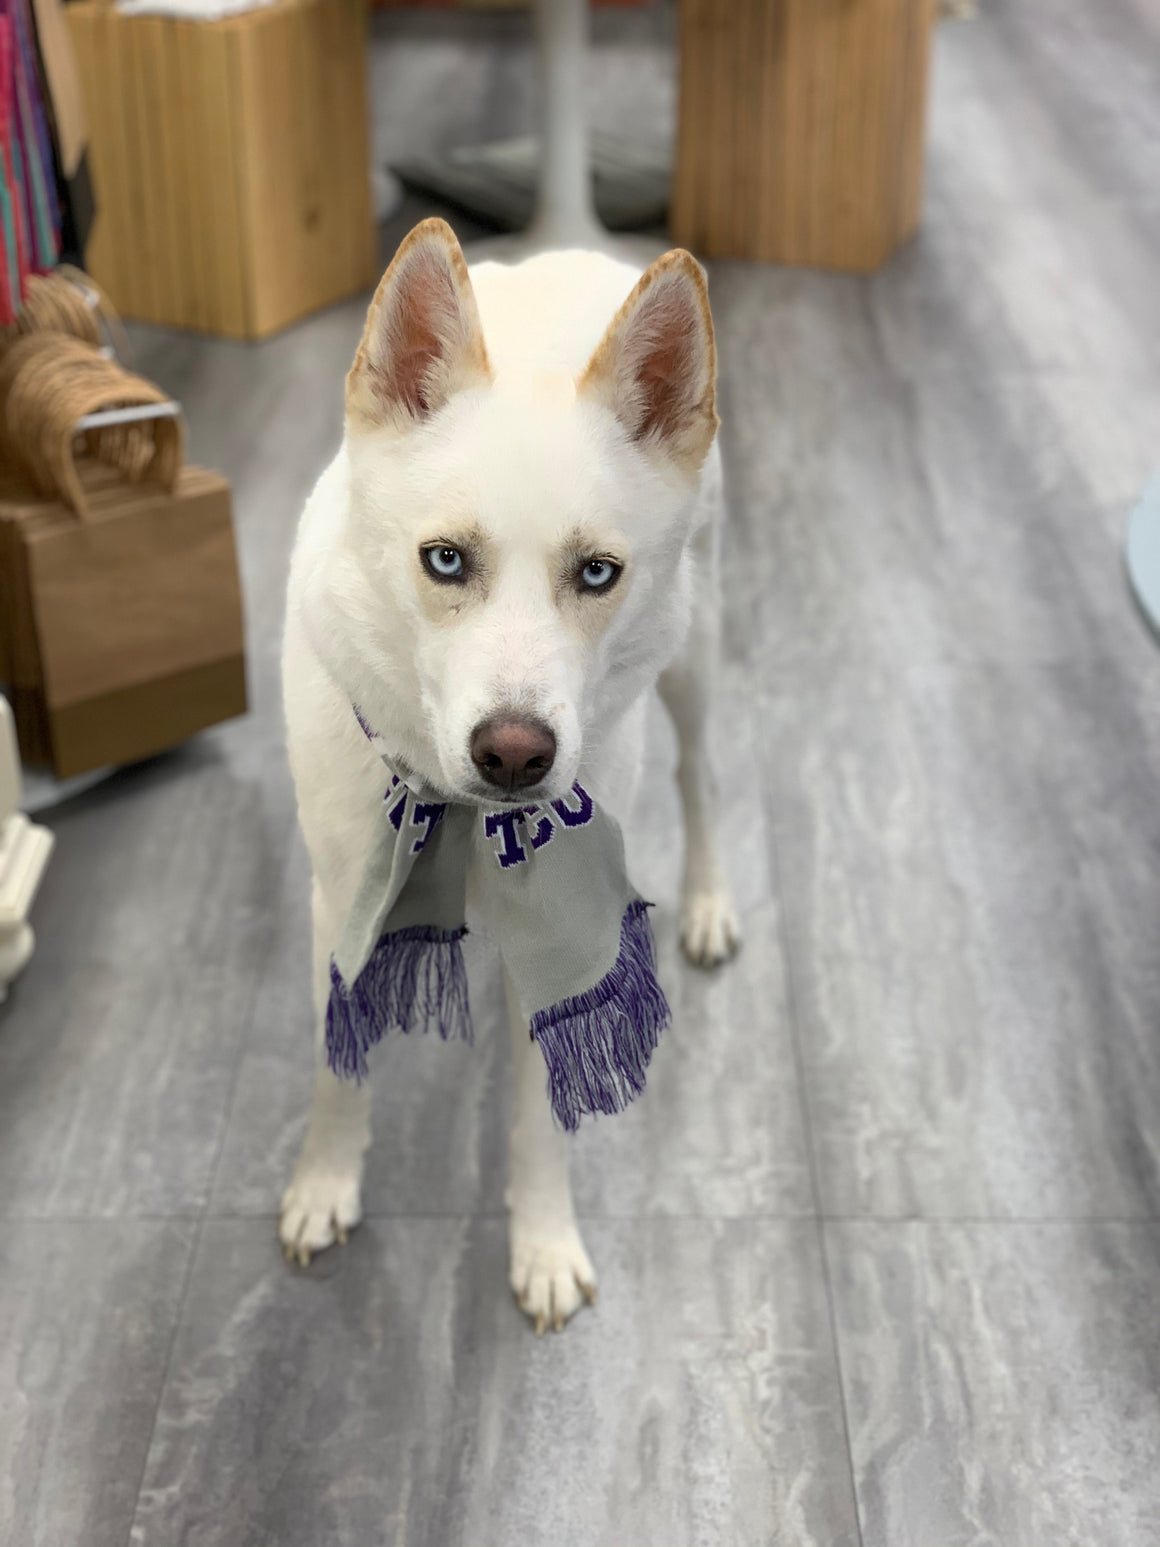 TCU Horned Frog Dog Scarf